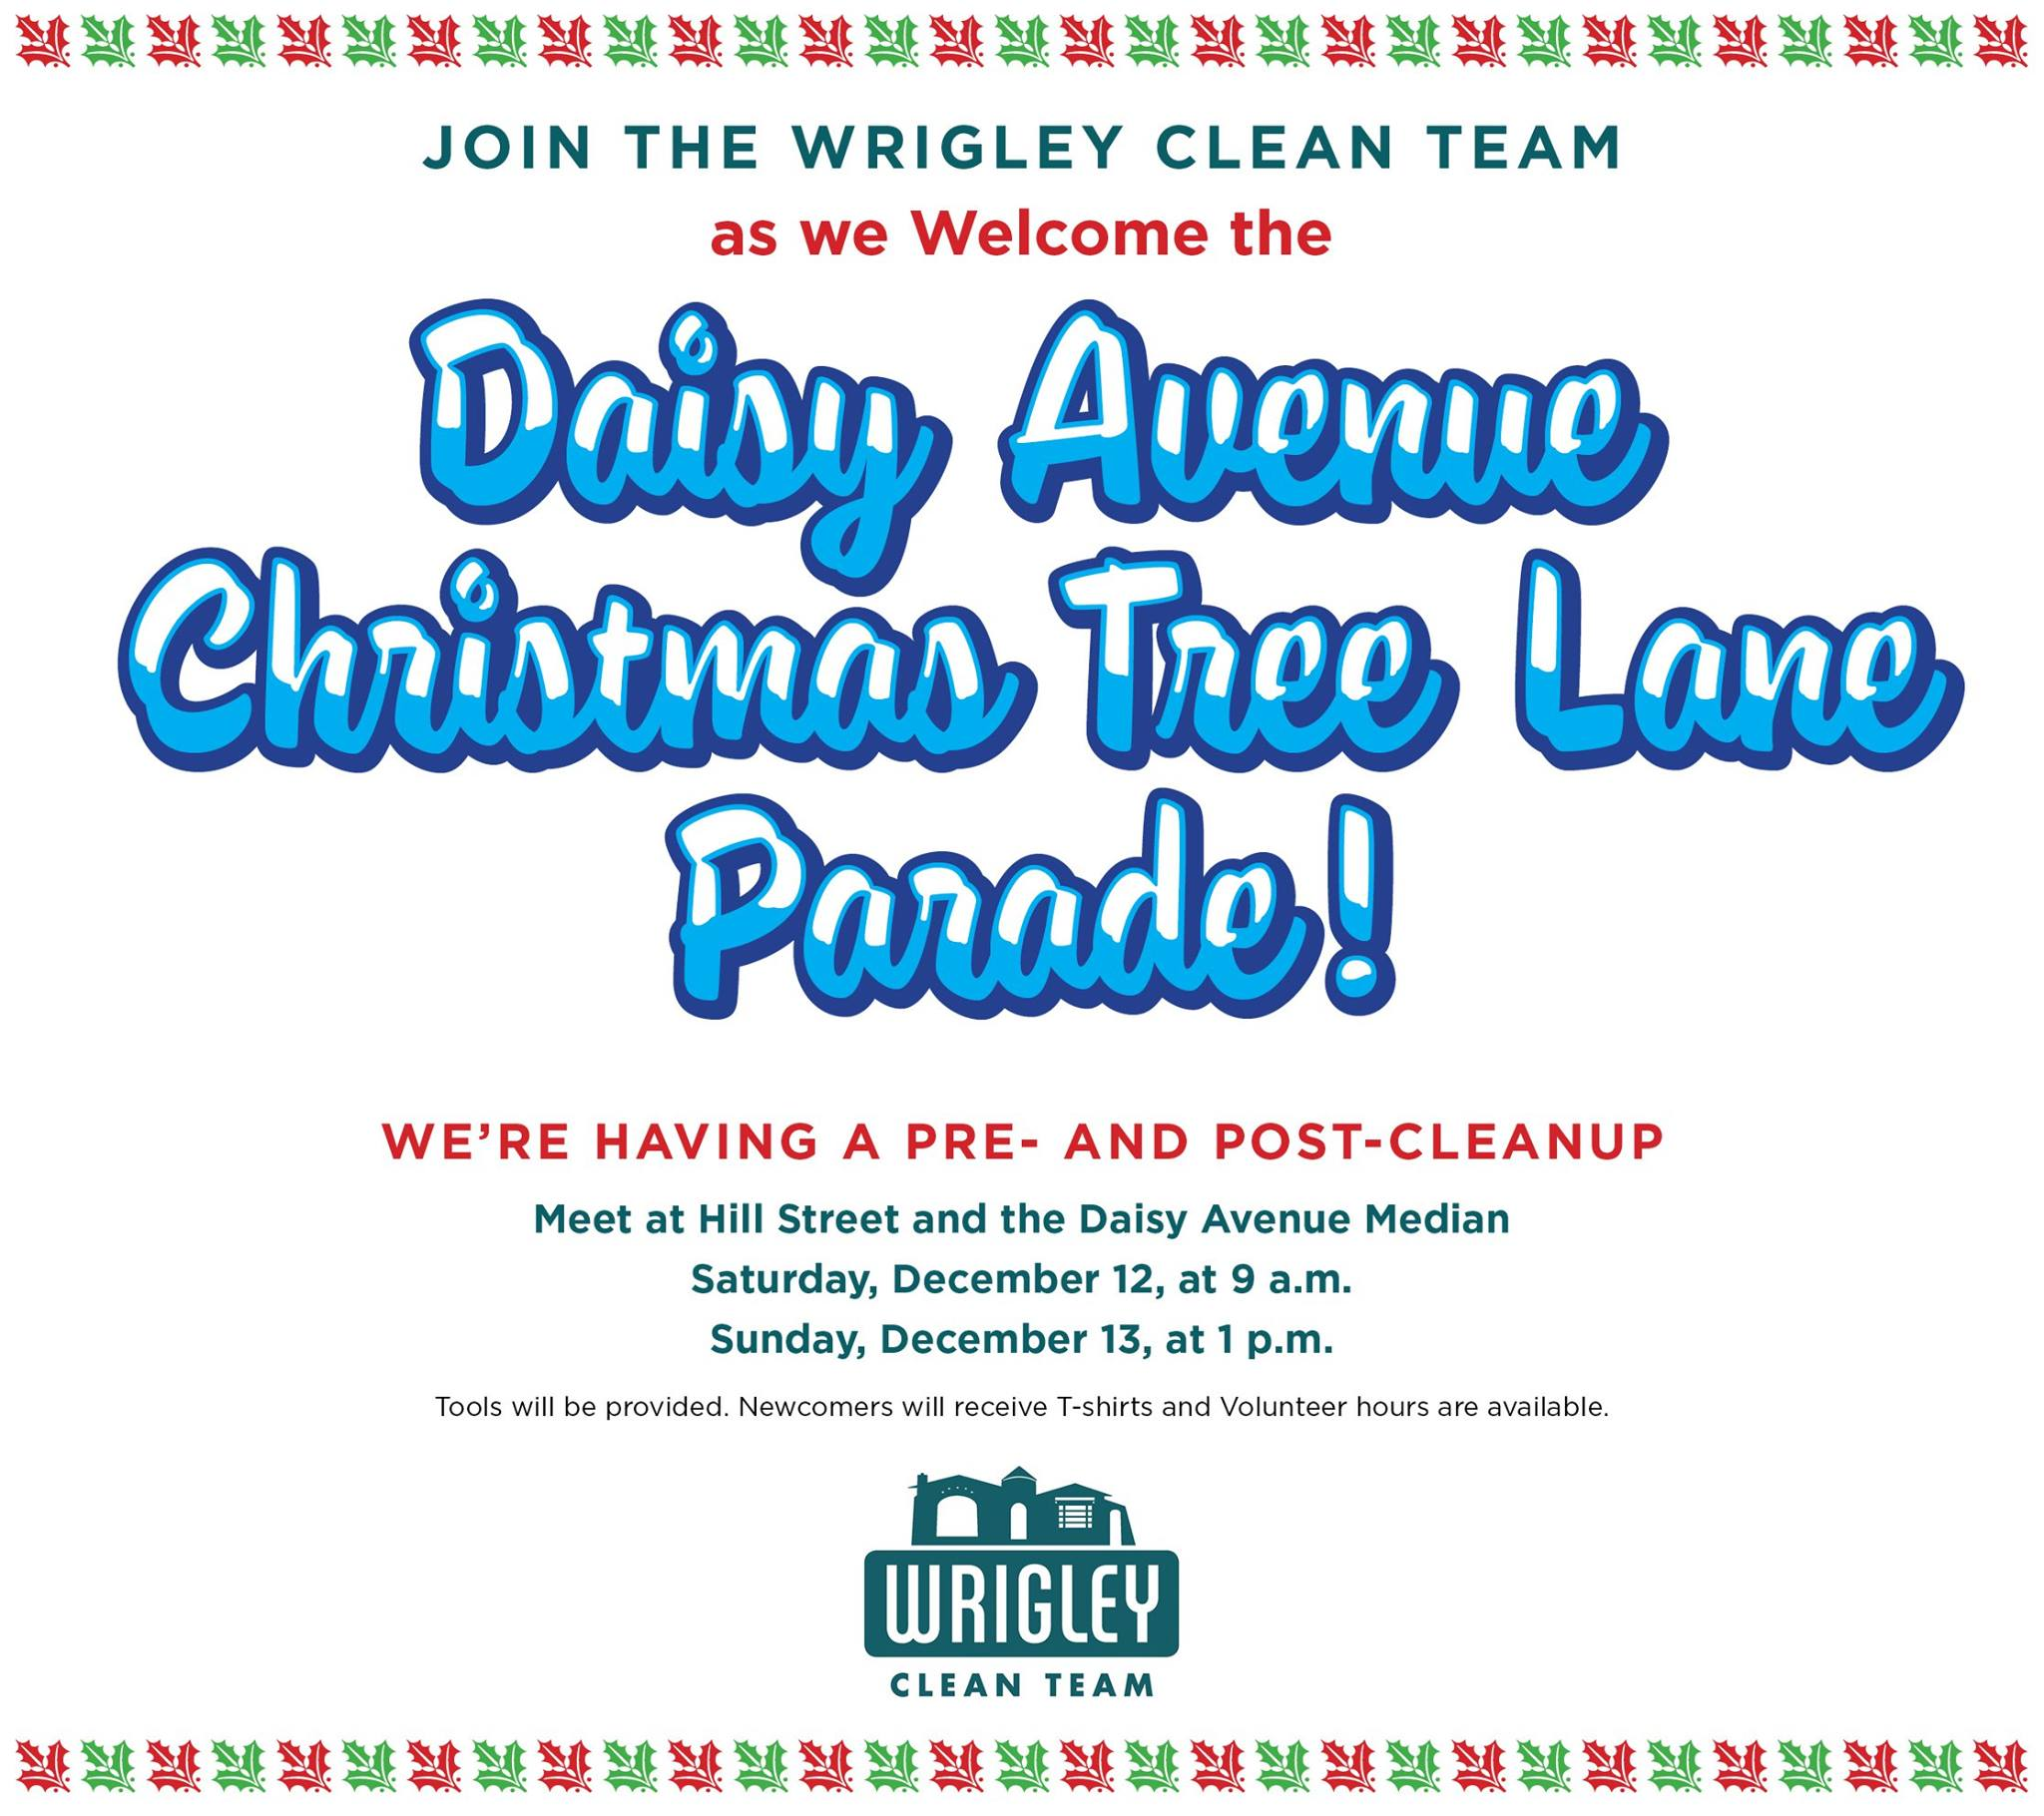 Wrigley Clean Team Daisy Parade Cleanups Flier